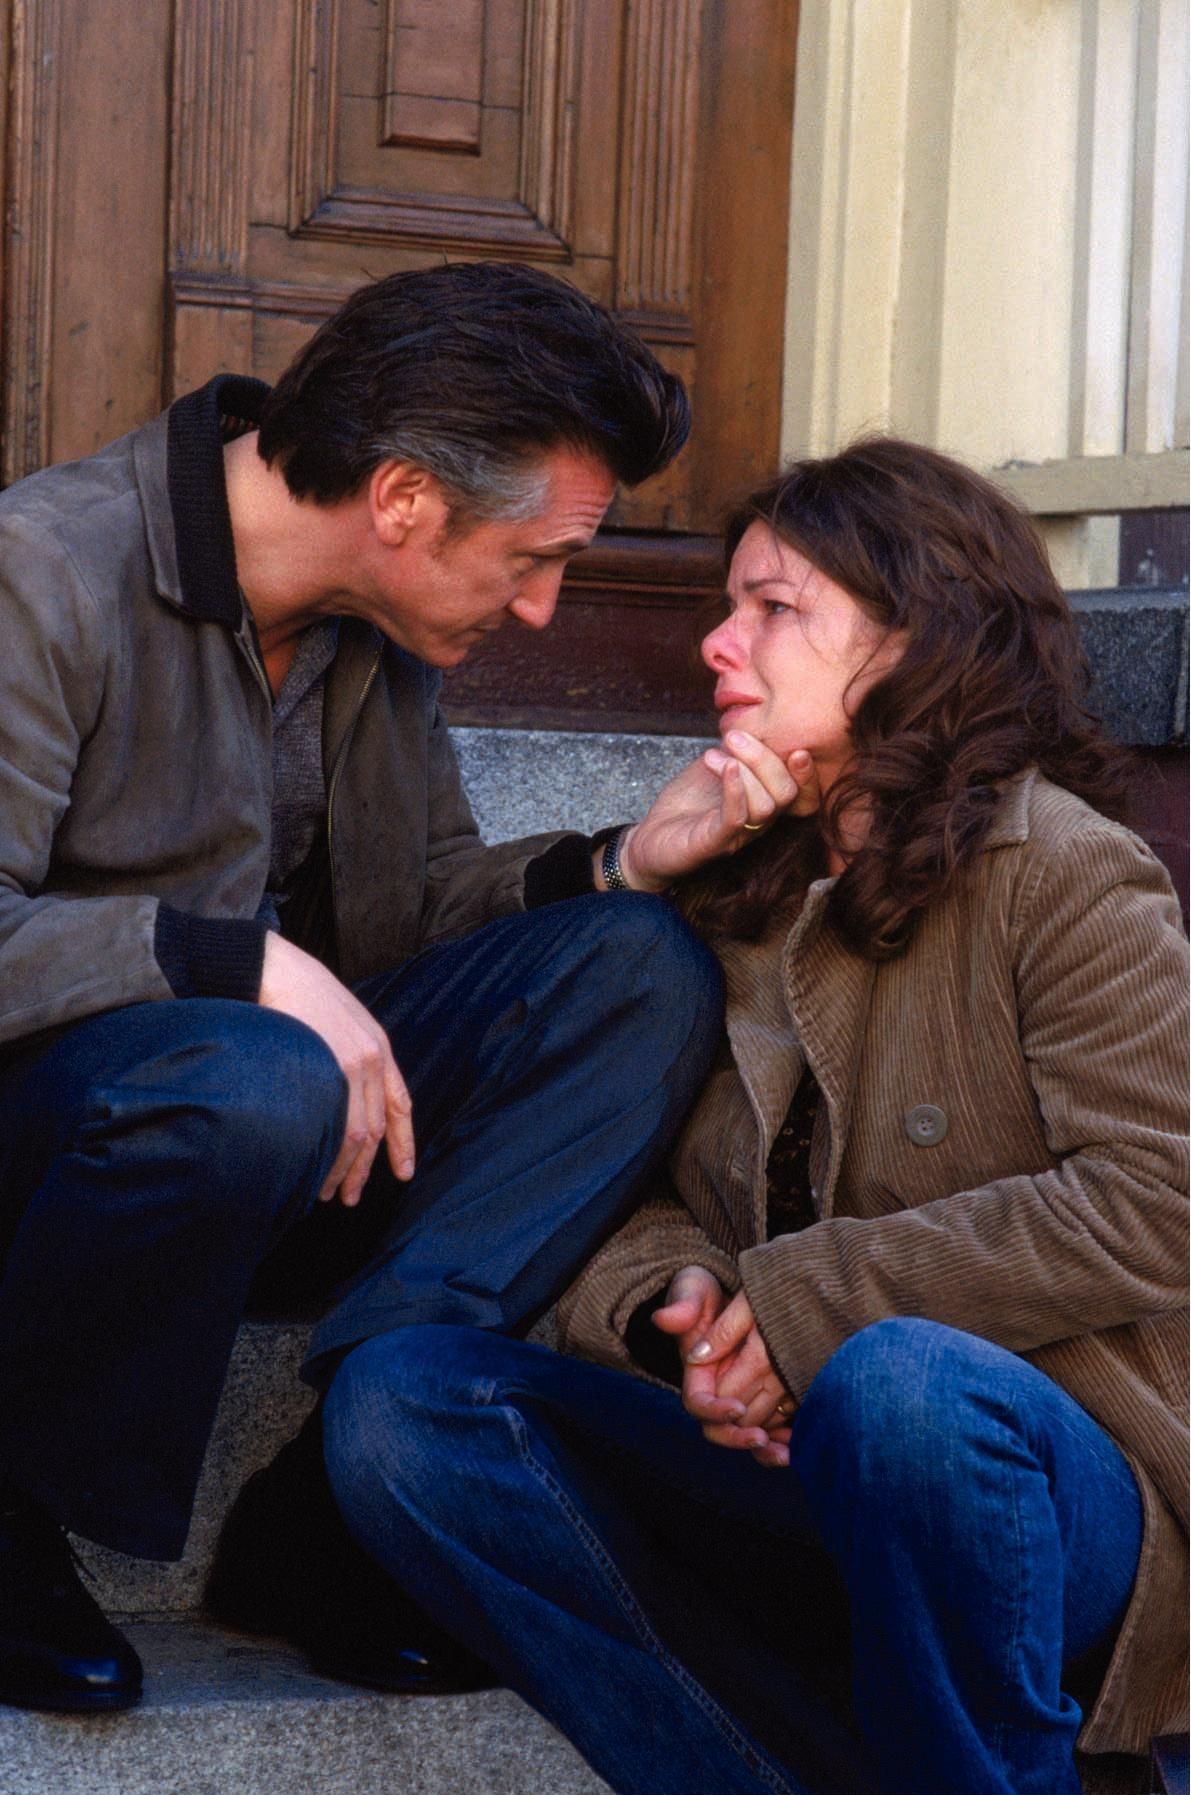 Sean Penn and Marcia Gay Harden in Mystic River (2003)